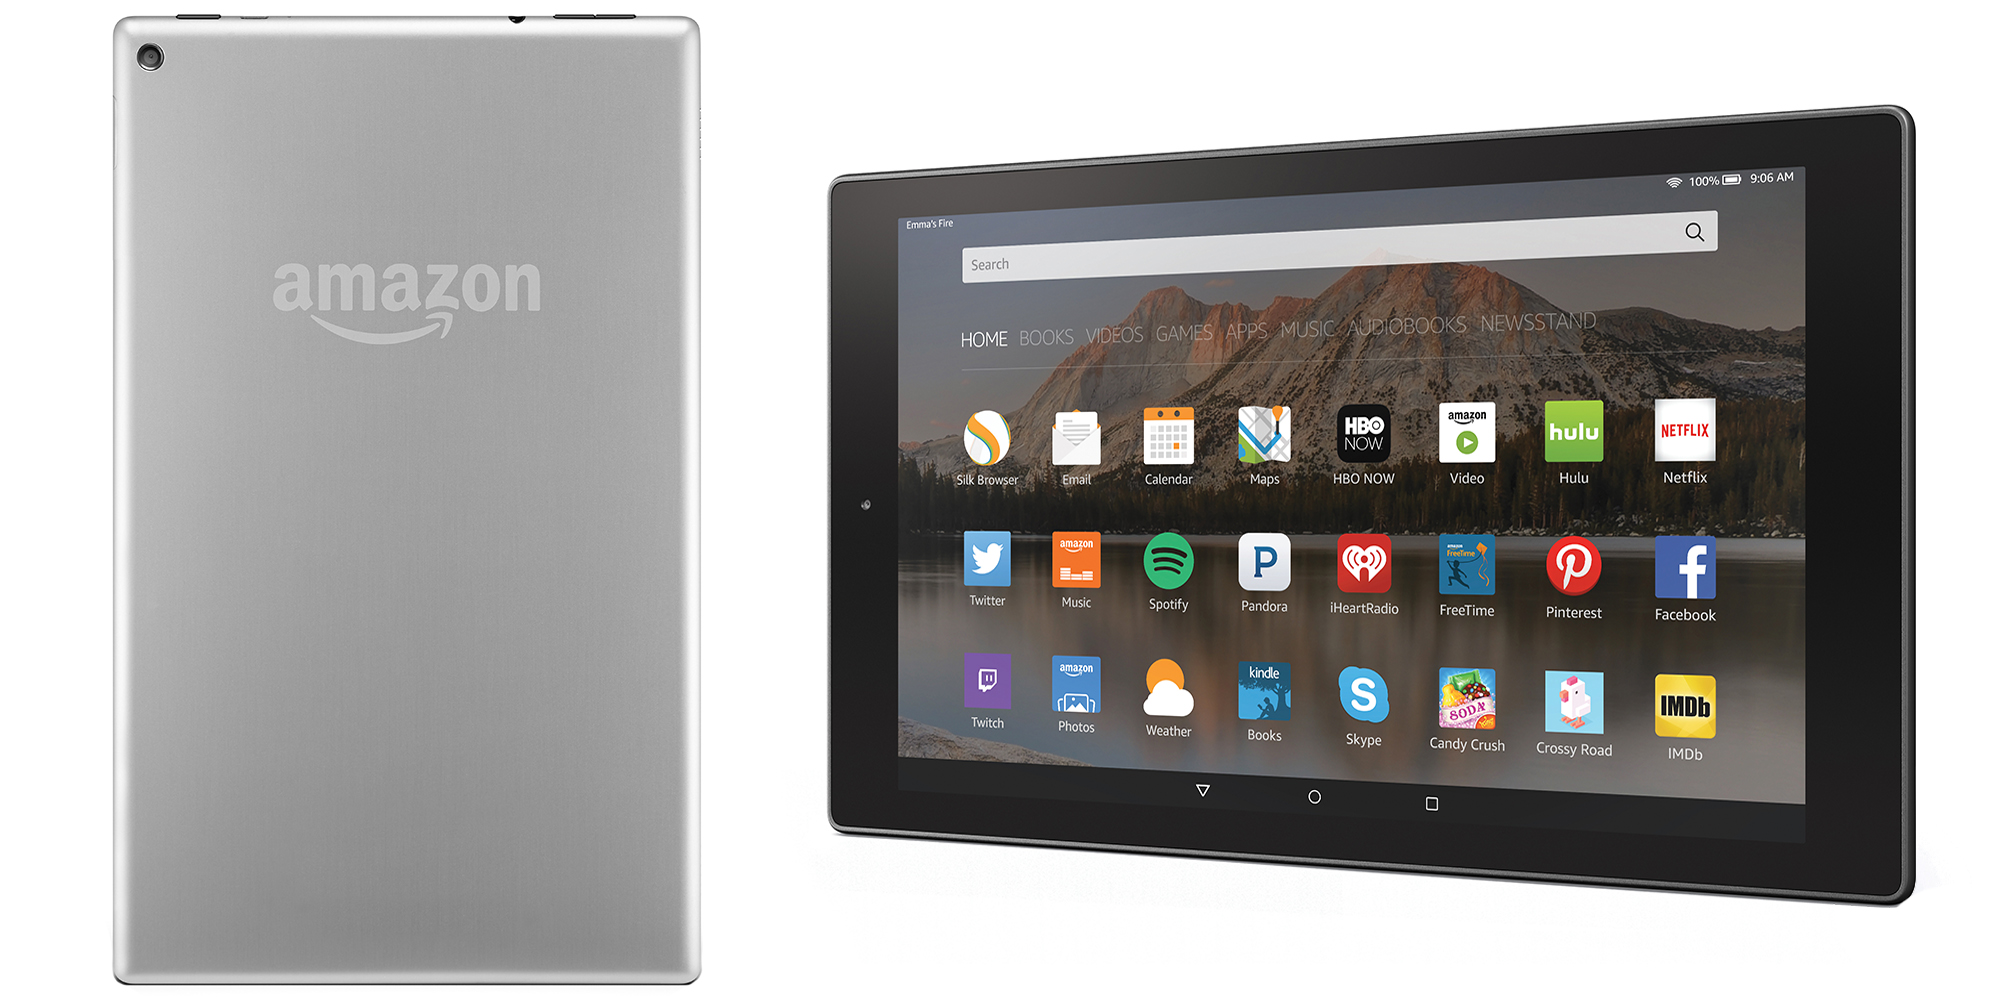 Amazon Announces Upgraded Fire Hd 10 Tablet With Fresh